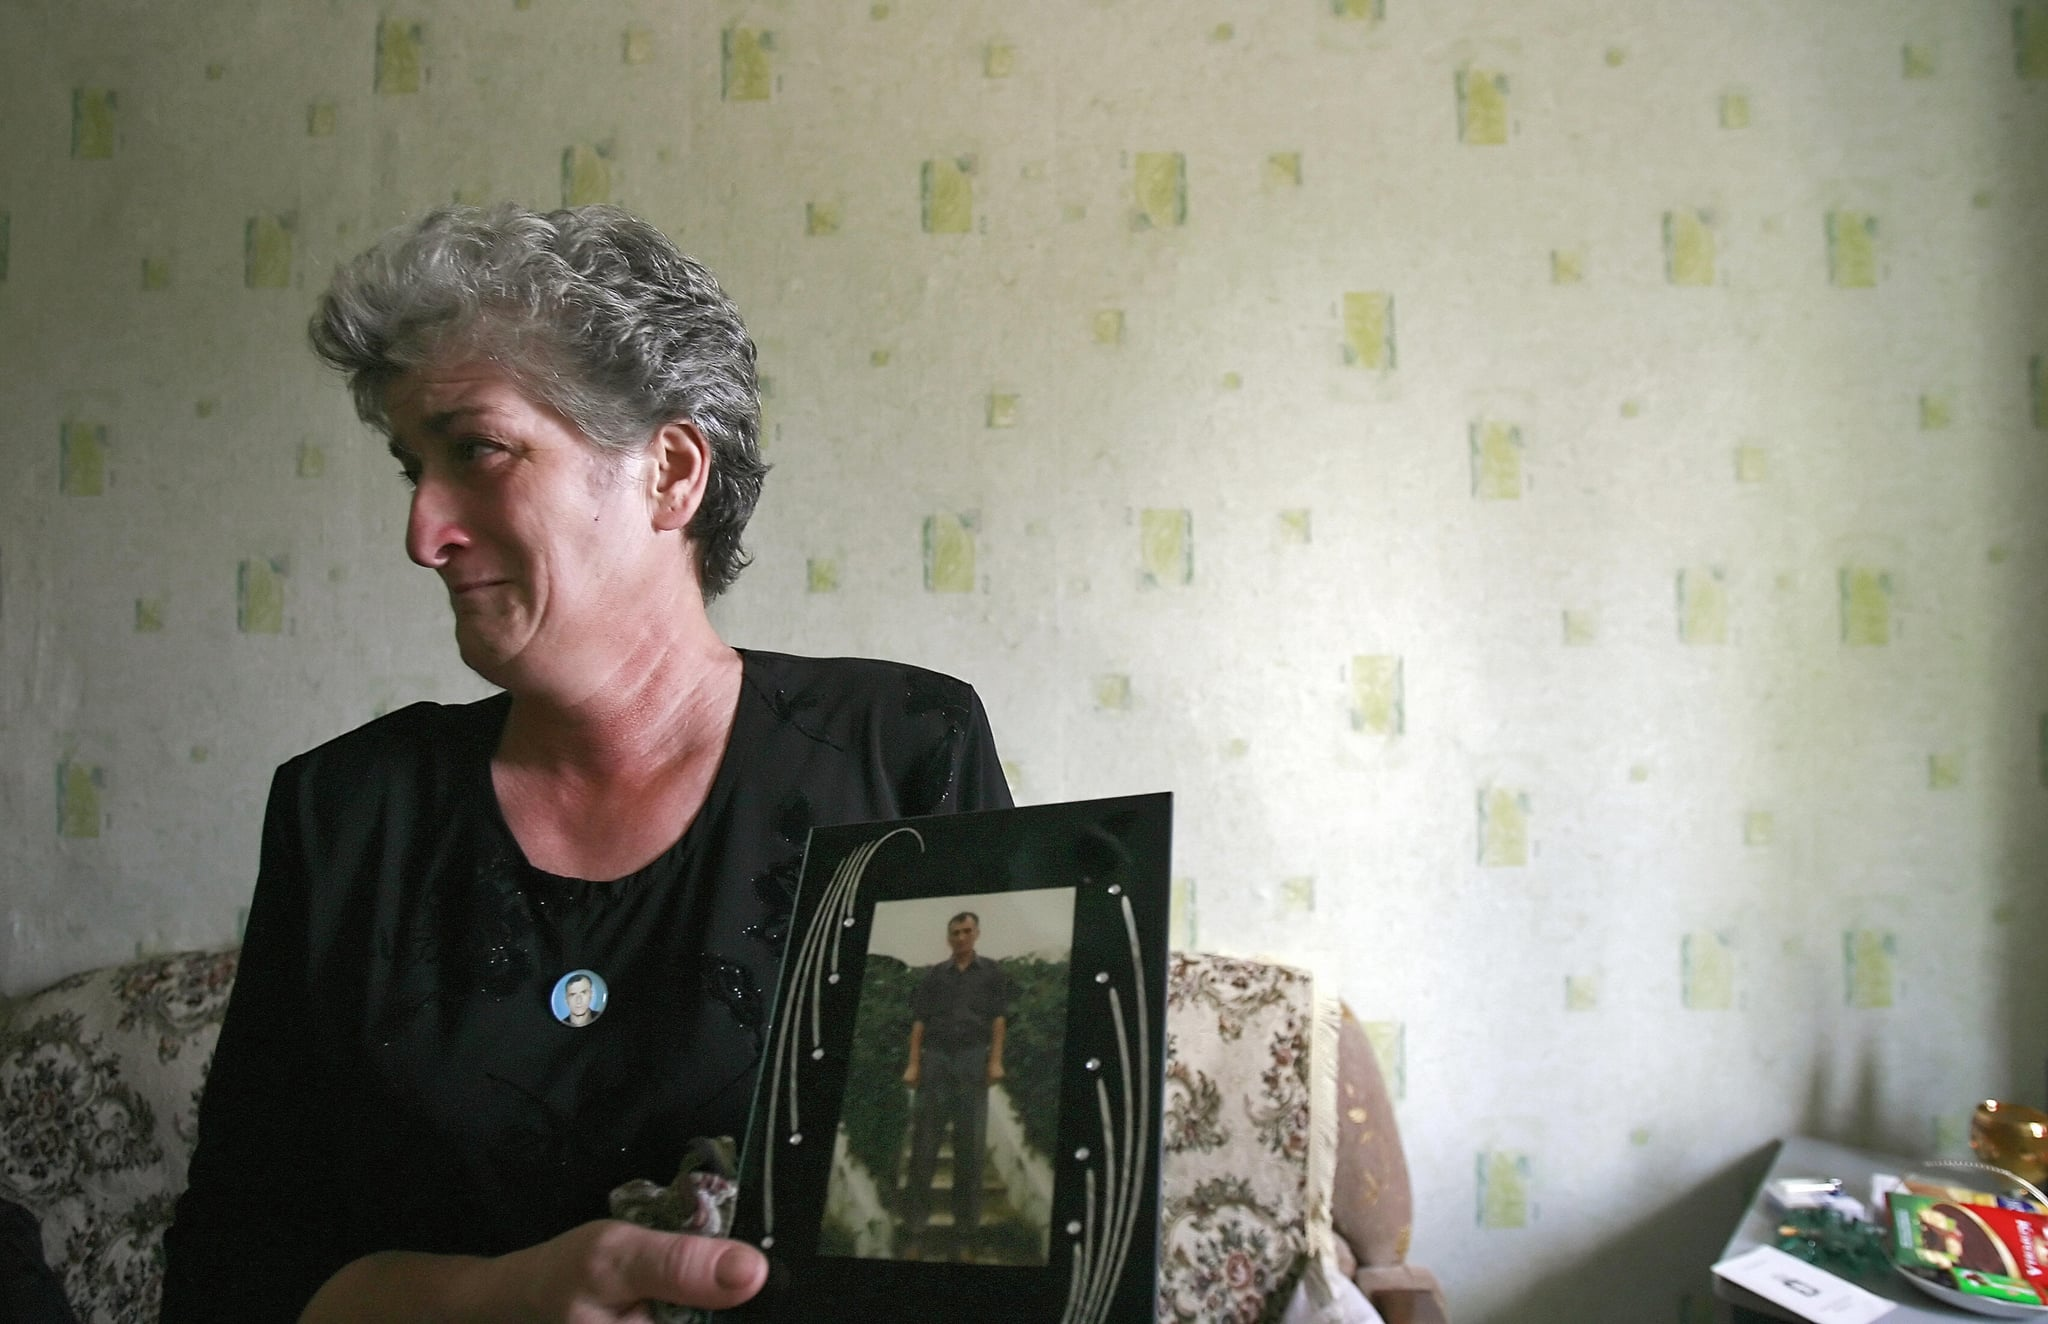 Senaki claimed three civilian deaths following Russian bombing of the nearby military base on August 8.